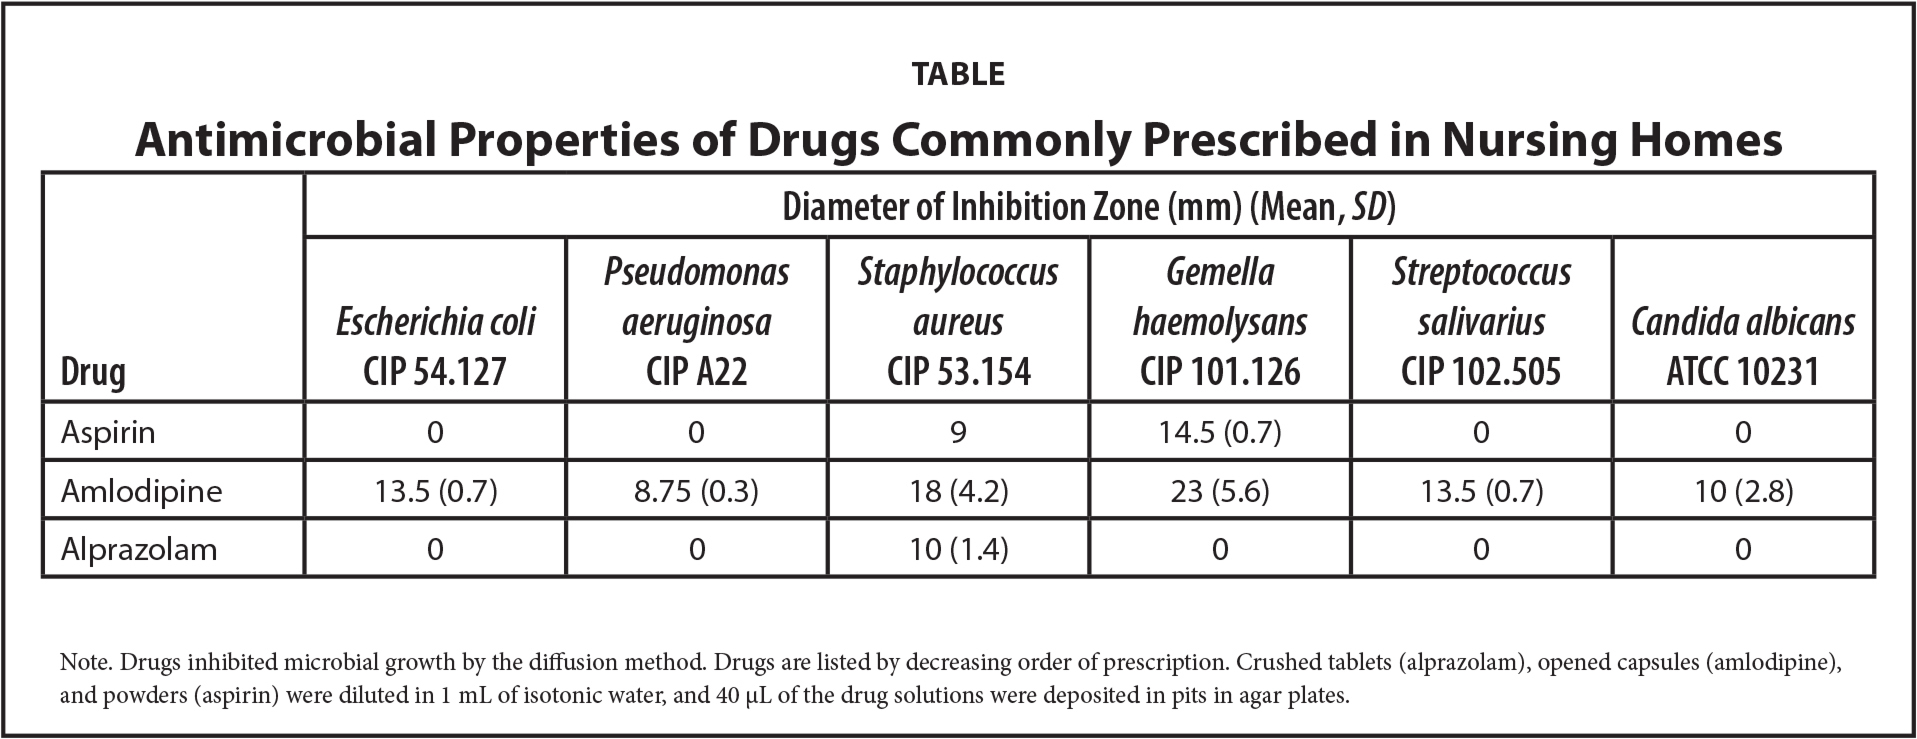 Antimicrobial Properties of Drugs Commonly Prescribed in Nursing Homes